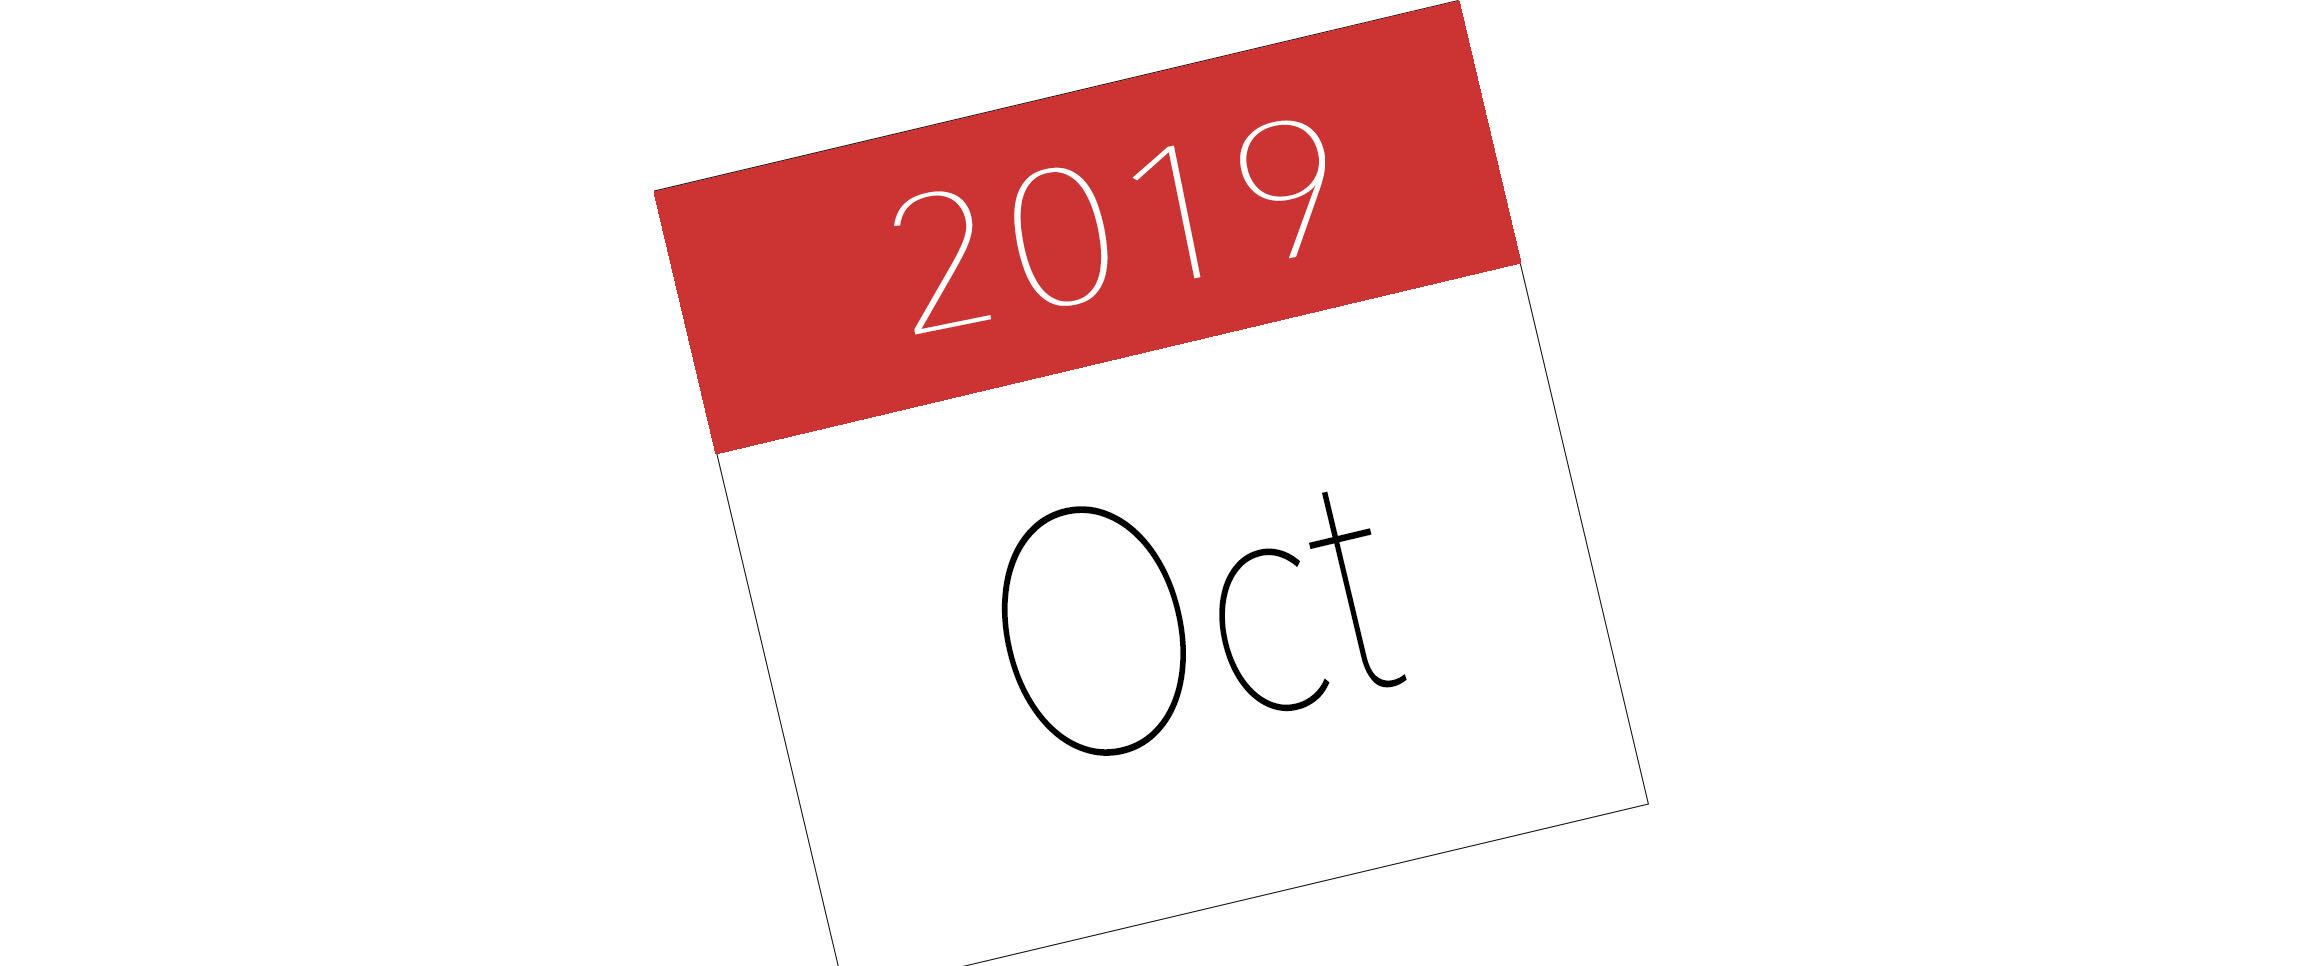 calendrier-site-oct_2019.jpg